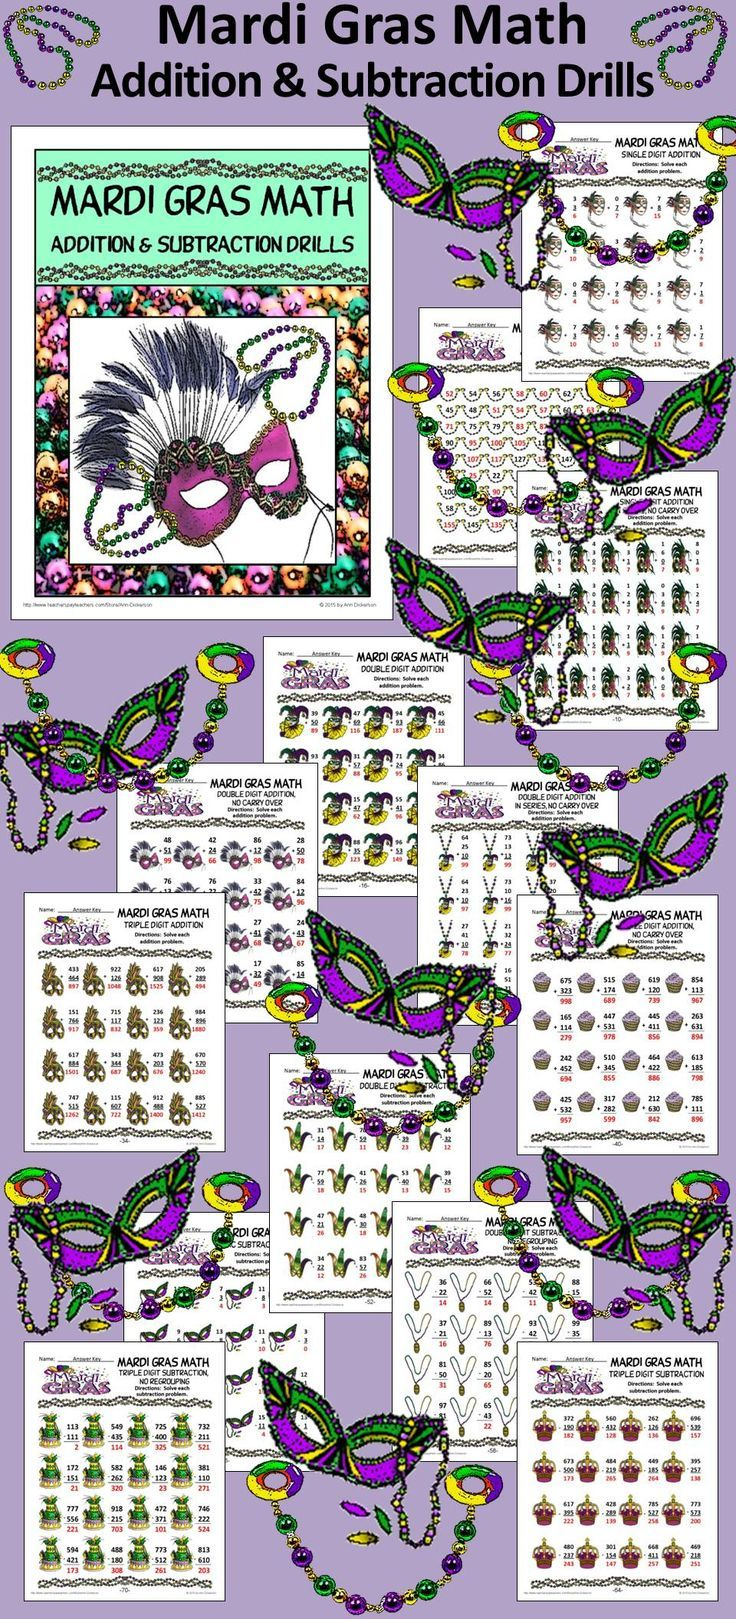 Mardi Gras Math Addition & Subtraction Drills: Providing practice for addition and subtraction skills.   Contents include 3 worksheets each: * Single Digit Addition * Single Digit Addition in Series, No Carryover * Double Digit Addition with & w/out  Carryover * Triple Digit Addition with & w/out  Carryover * Basic Subtraction Facts * Double Digit Subtraction with & w/out Regrouping * Triple Digit Subtraction with & w/out Regrouping * Skip Counting  #Mardi #Gras #Math #Worksheets…